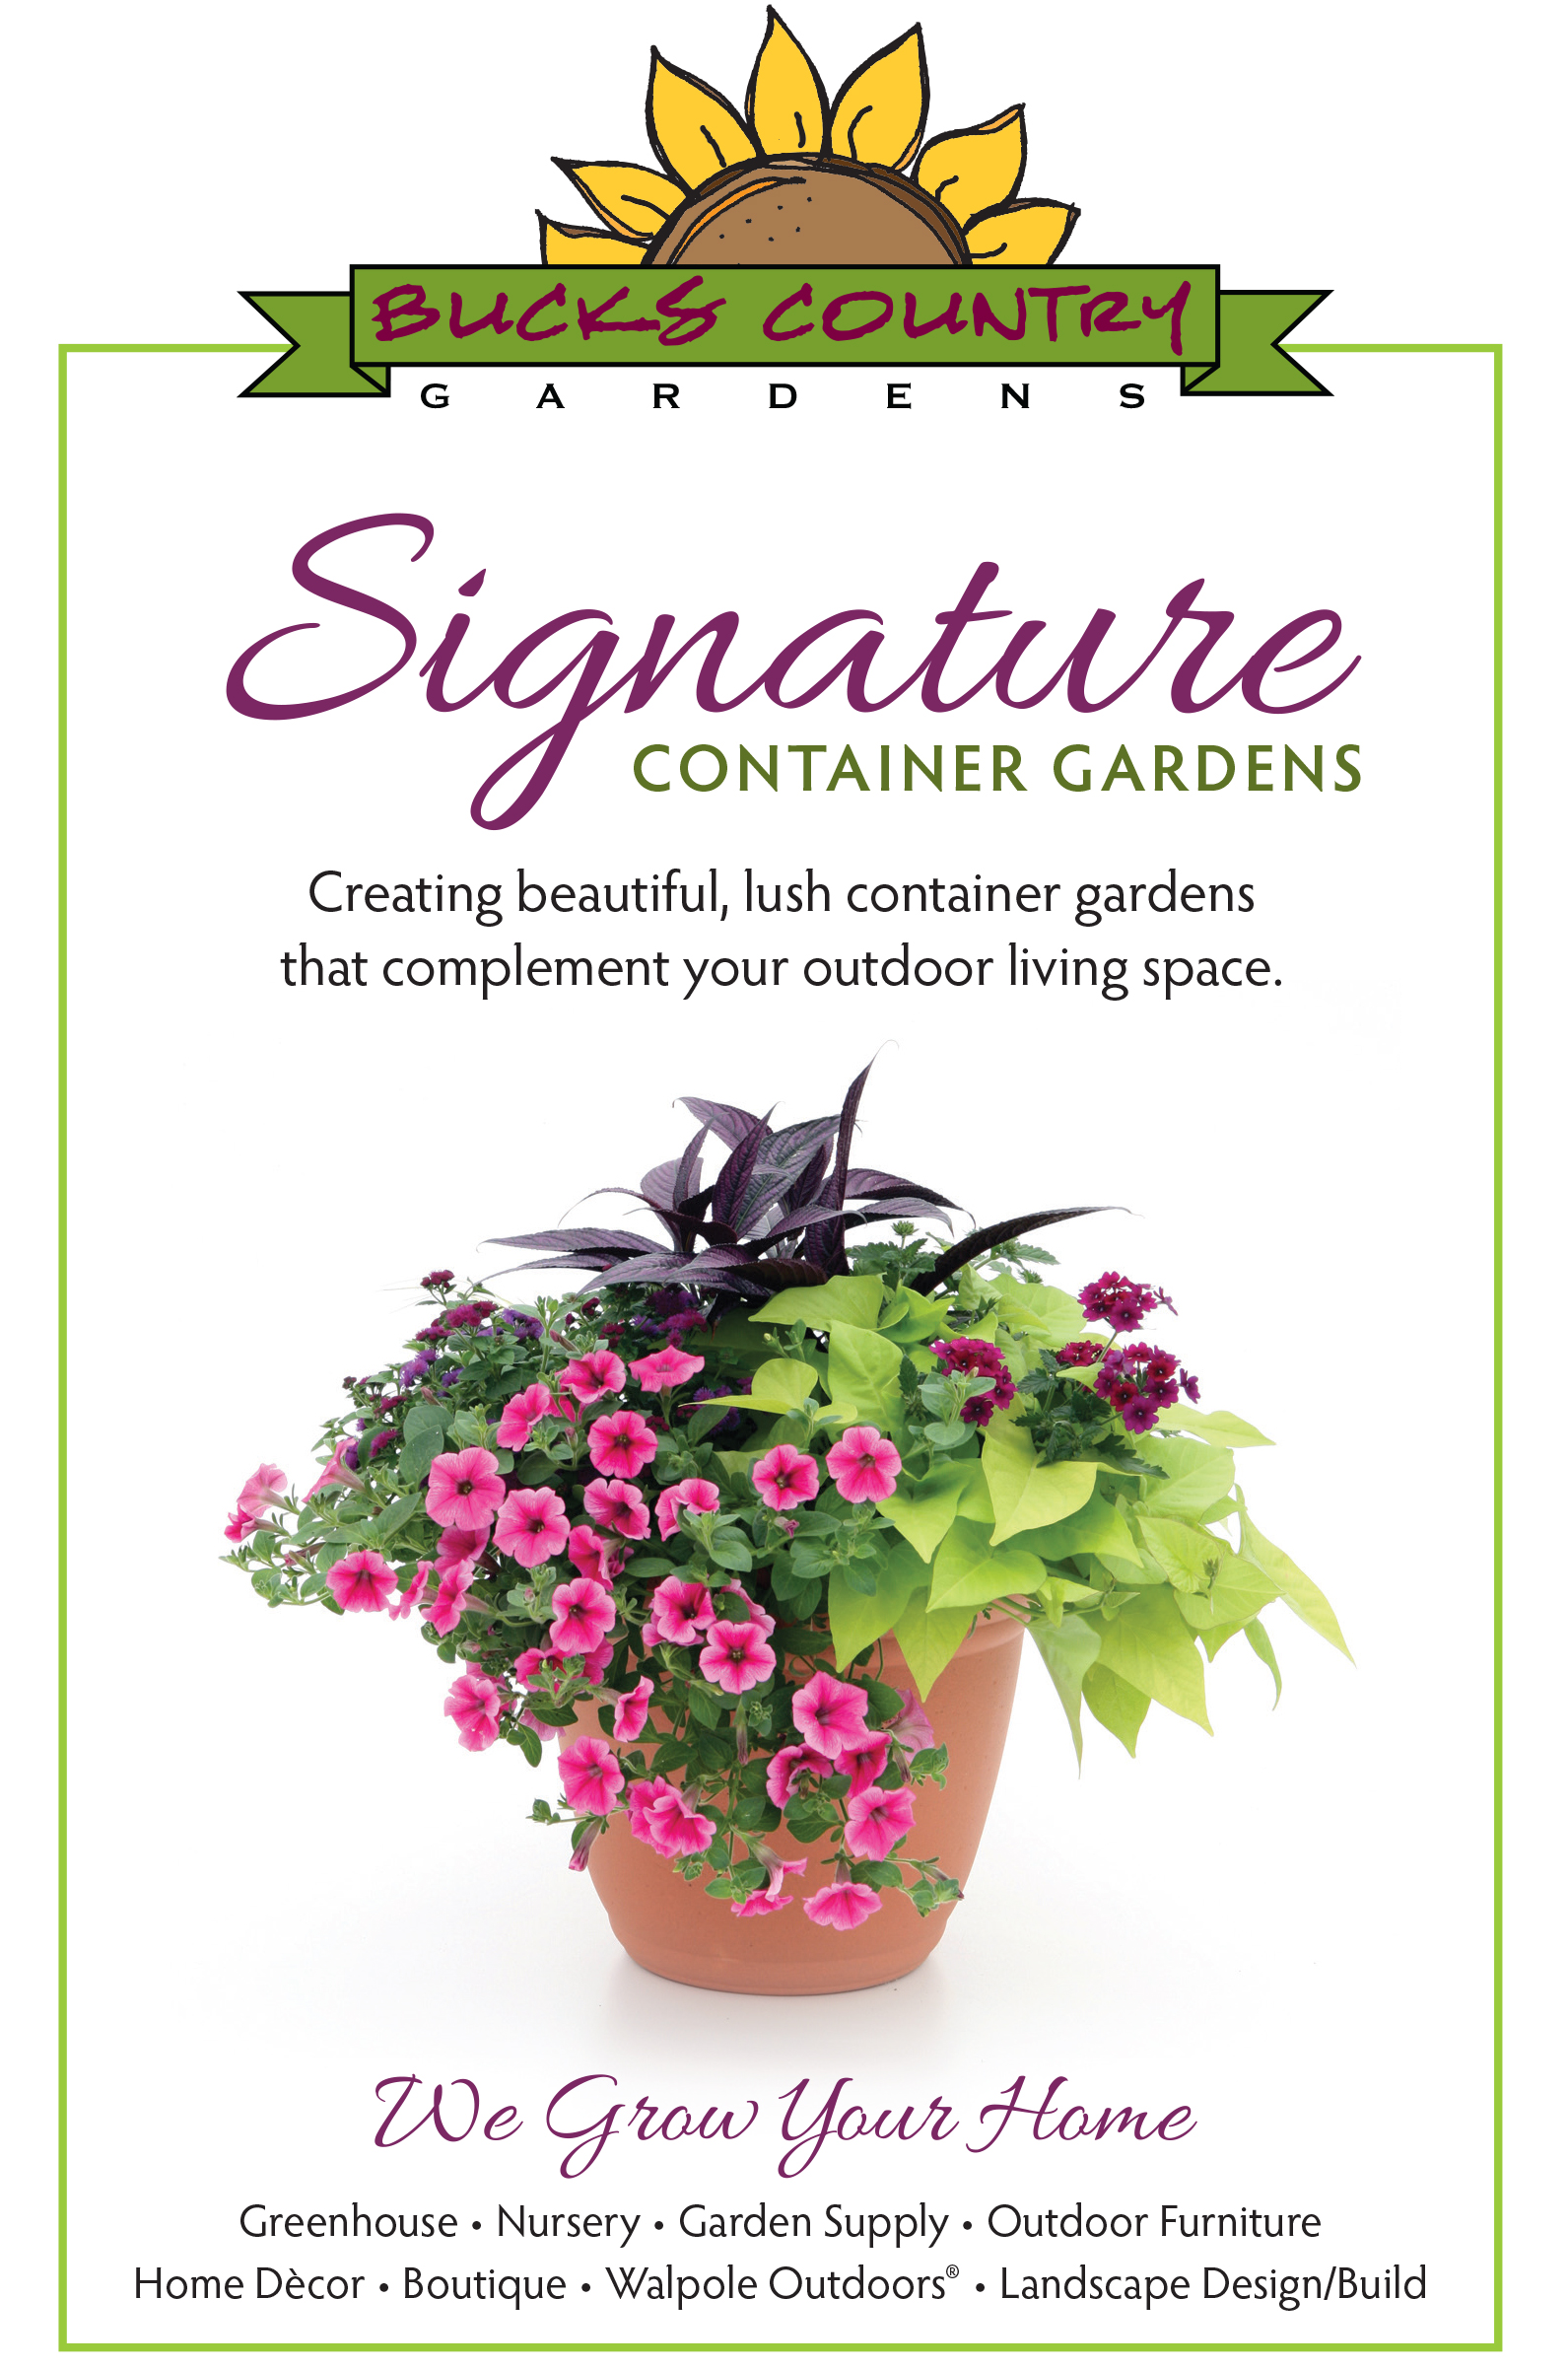 Container Gardening Is An Excellent Way To Grow Flowers And Vegetables,  Especially For People Who Love To Garden But Donu0027t Have The Room.